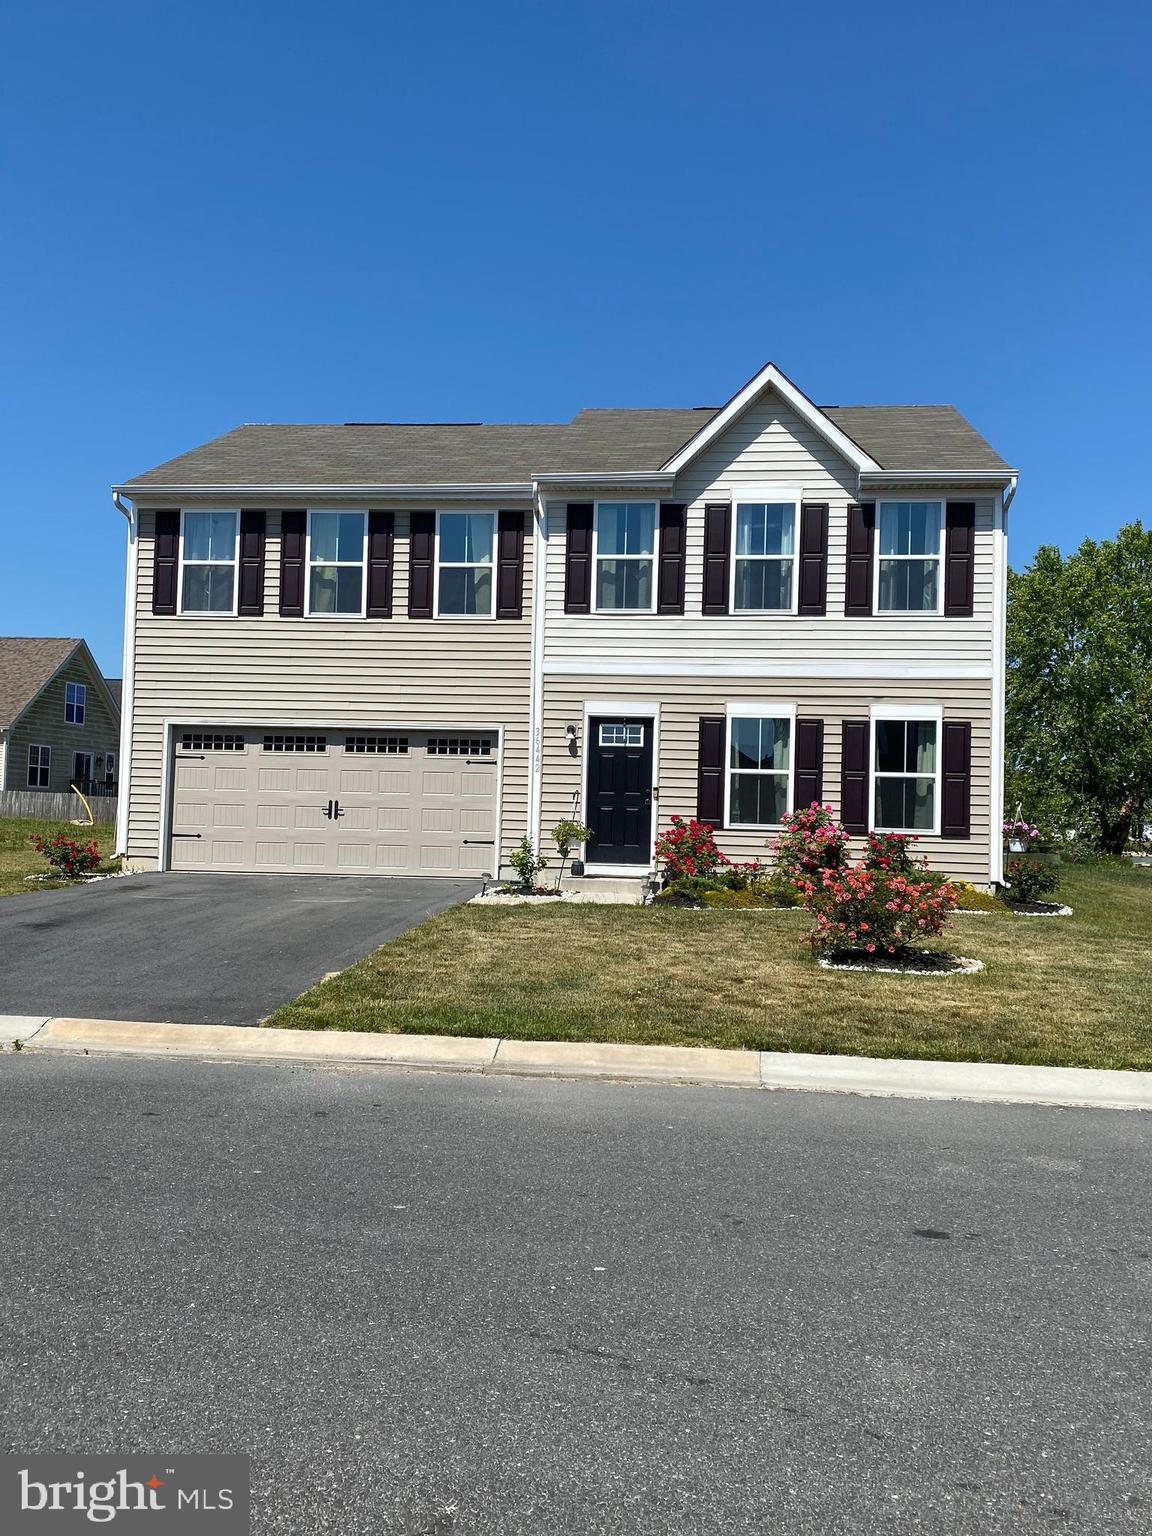 Wow!!!! look at the price per square on this almost new home and the square feet your getting with this beautiful home $152.24 SQFT 1918 square feet. This home was built in 2018 with lots of room in this home. Sellers  planning to relocate for job it has had a great reduction...Come see this great house  Enjoy peaceful living with a beautiful pond view! Welcome to a premium corner lot home in the highly desired Yorkshire Estates development. Have easy access to community mailboxes and empty lot next door. This fairly newly constructed home has four spacious bedrooms and an office on the first floor. Perfect for a growing family or for those working from home. This home has two full bathrooms and a half bath on the first floor, perfect for entertaining in the main living space and around the large kitchen island. The kitchen has been freshly repainted with brand new subway tile backsplash that makes the beautiful granite countertops pop! The home is only three years old, so most items are covered by builder's or manufacturer's warranty. The kitchen has builder's upgraded stainless steel appliances and the large laundry room has a washer and dryer- all included with the home! The large two car garage can be used to house your vehicles or converted into a gym space. Don't miss out on an opportunity! Contact us today for a viewing!